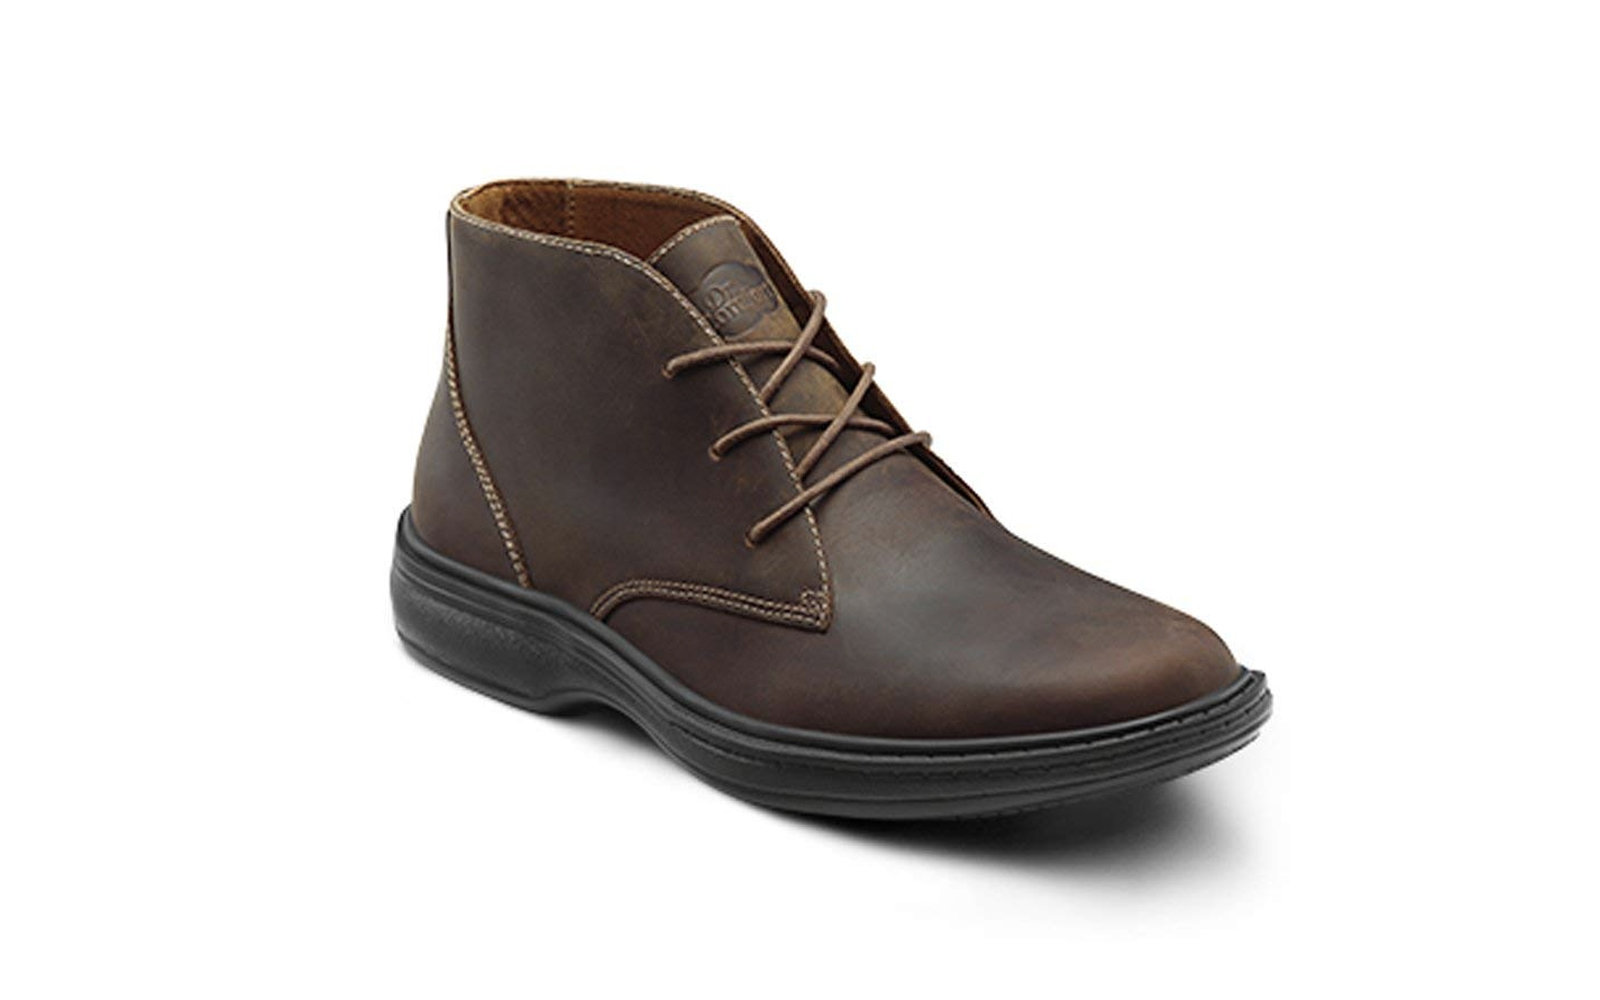 Dr. Comfort Ruk Men's Leather Lace-up Boot